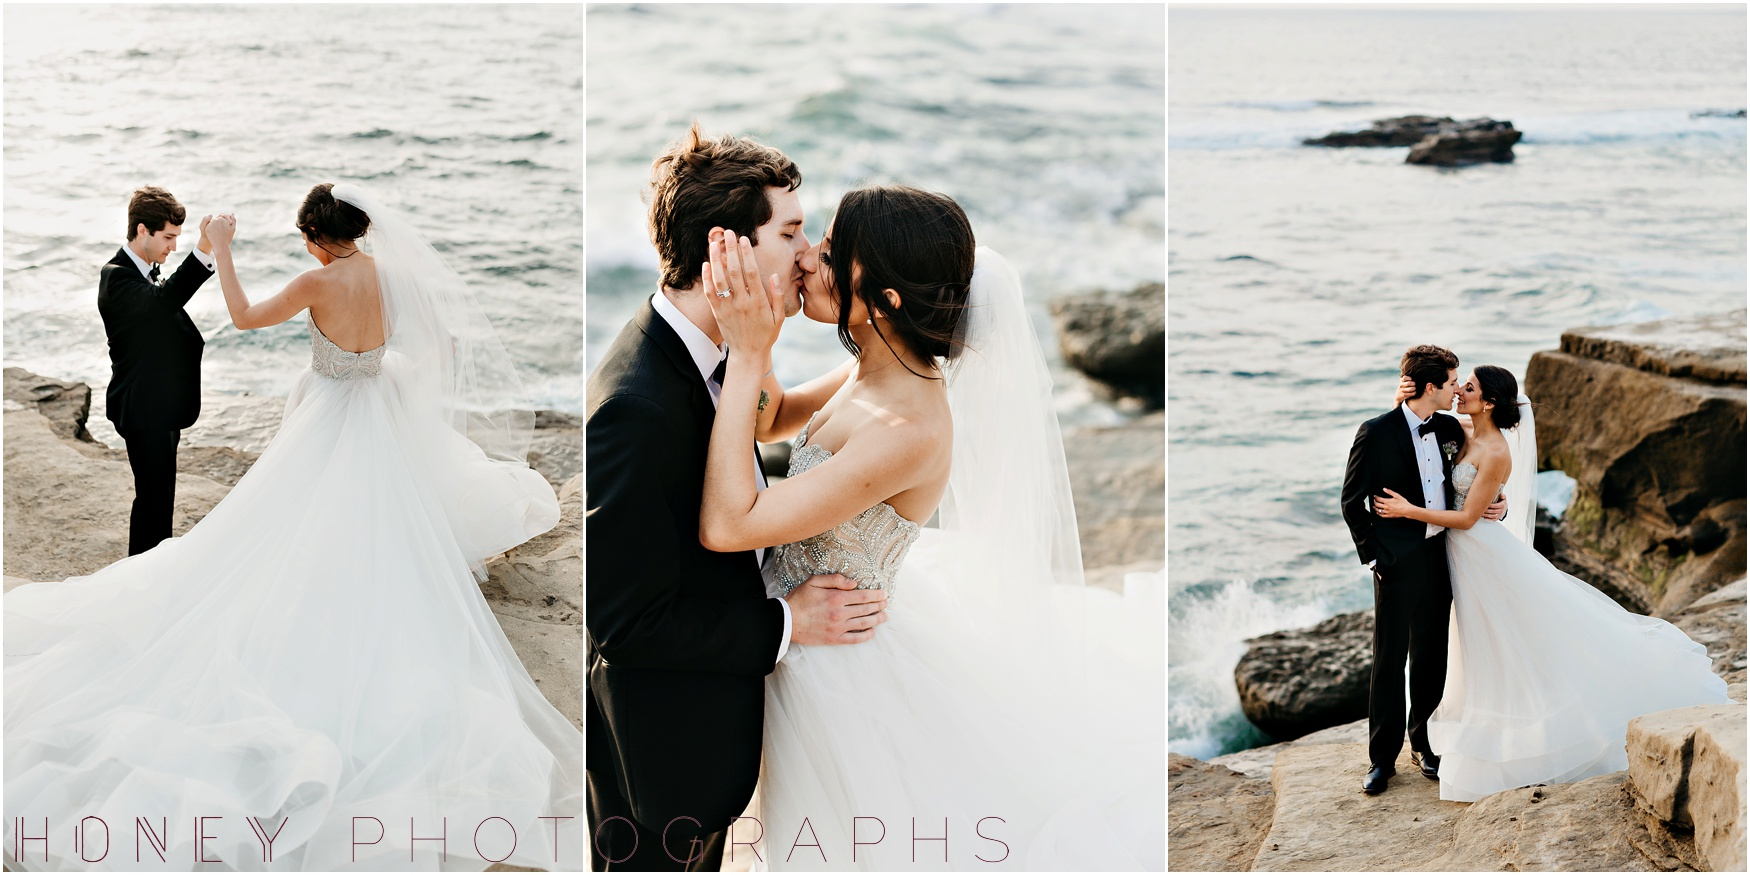 la_jolla_timeless_classic_elegant_cliffs_beach_black_tie_wedding036.jpg